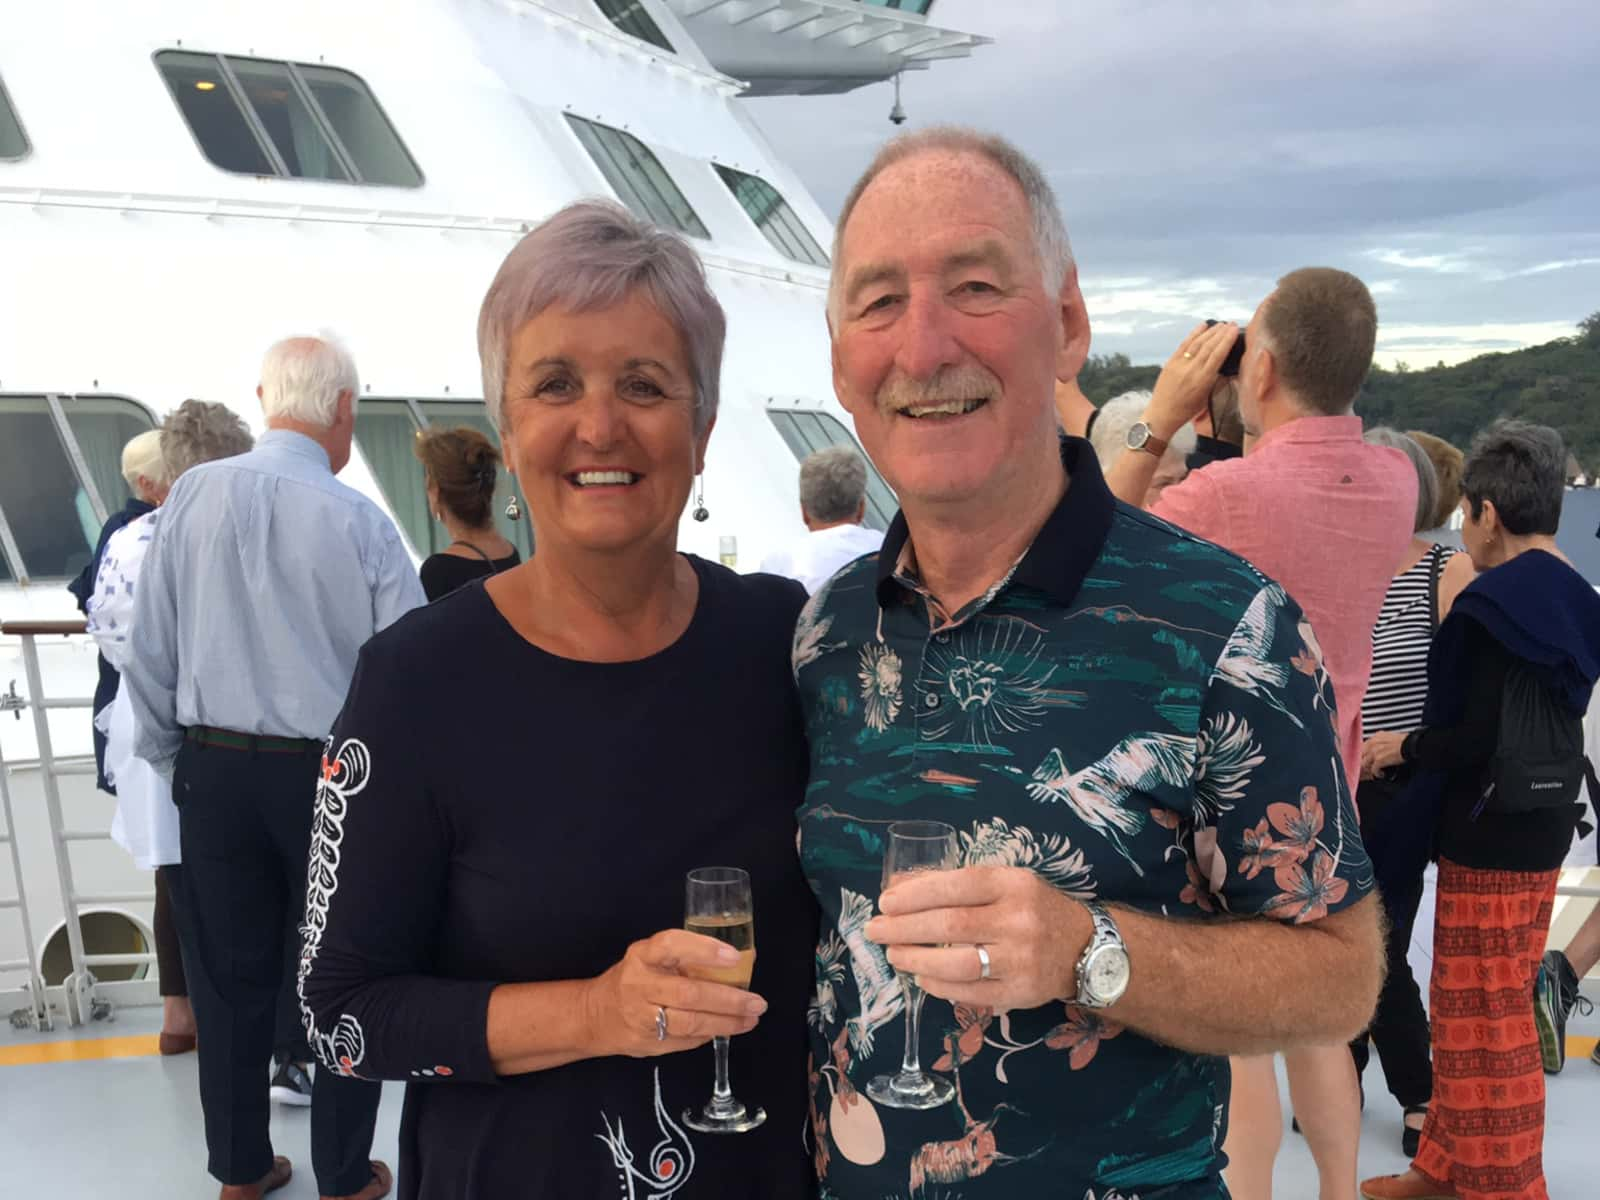 Heather & Rod from Glen Forrest, Western Australia, Australia